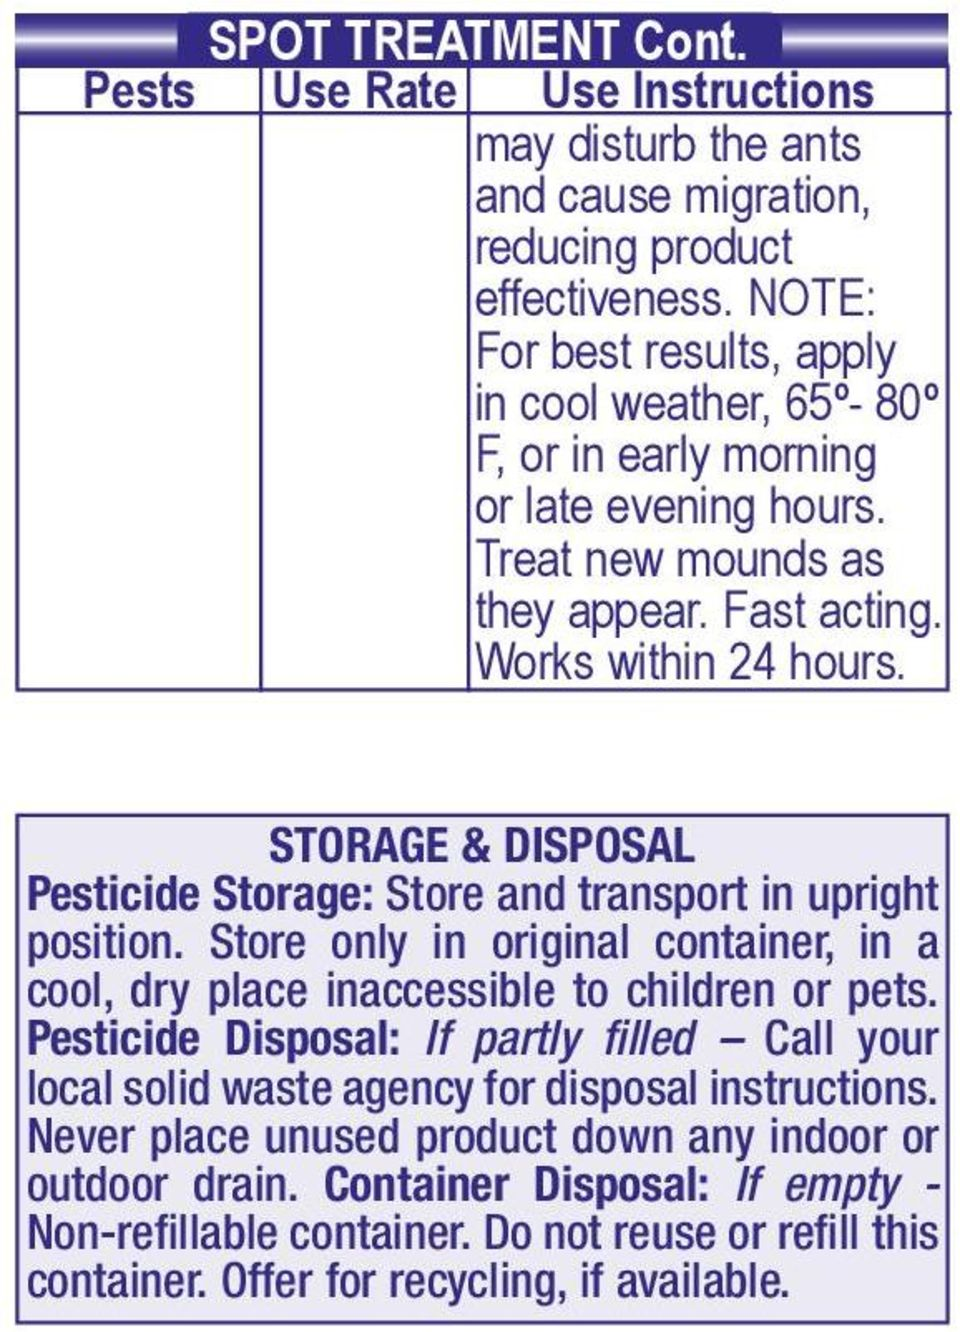 STORAGE & DISPOSAL Pesticide Storage: Store and transport in upright position. Store only in original container, in a cool, dry place inaccessible to children or pets.